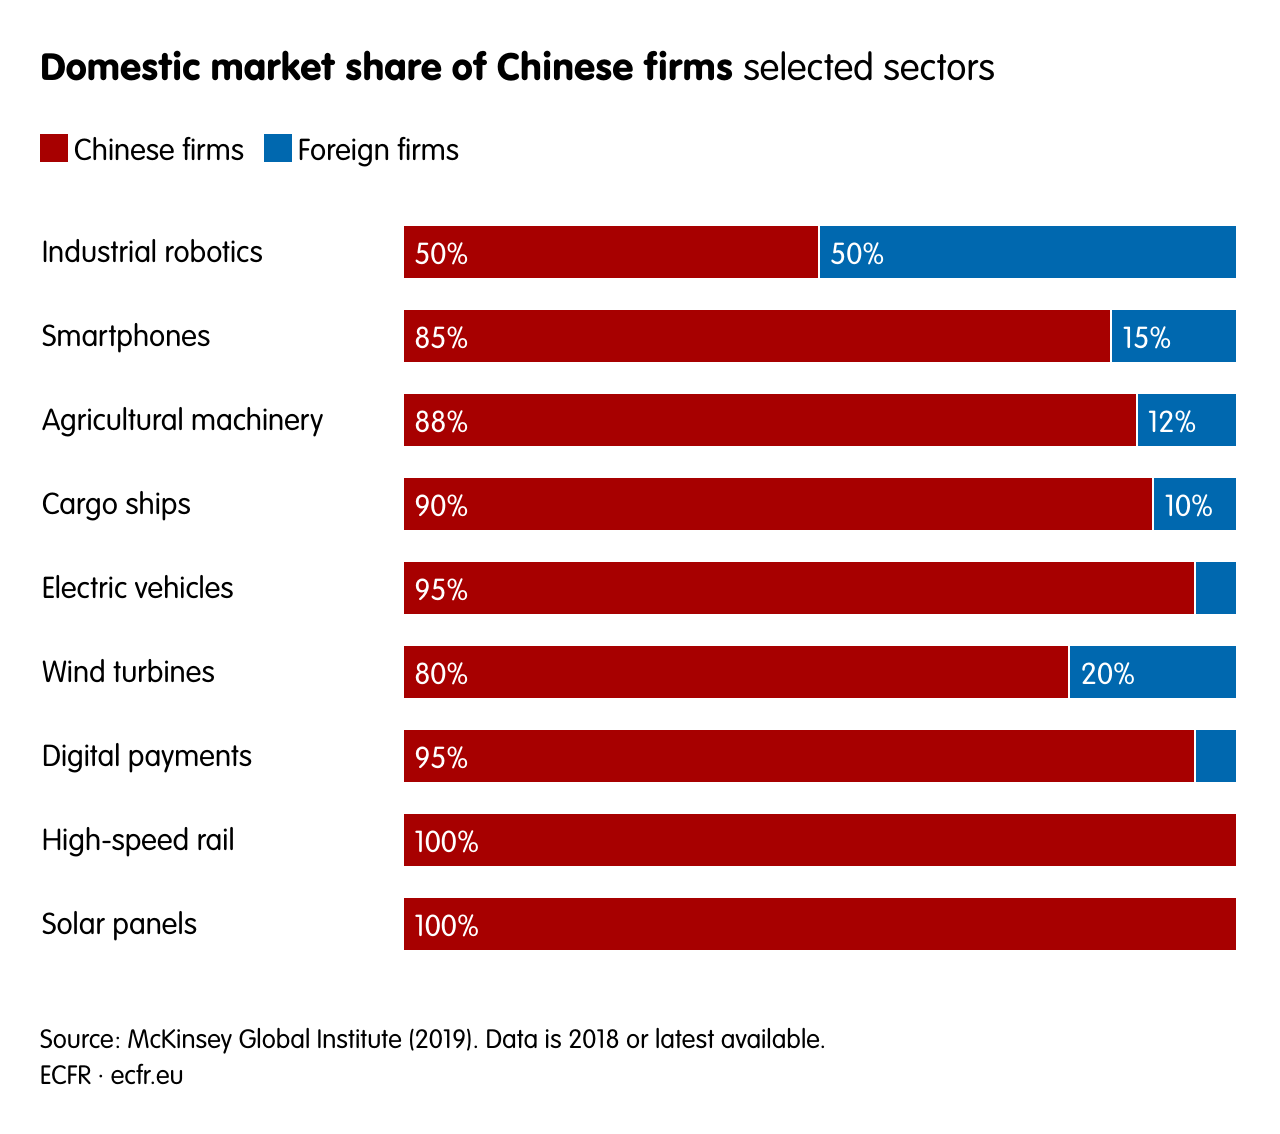 Domestic market share of Chinese firms